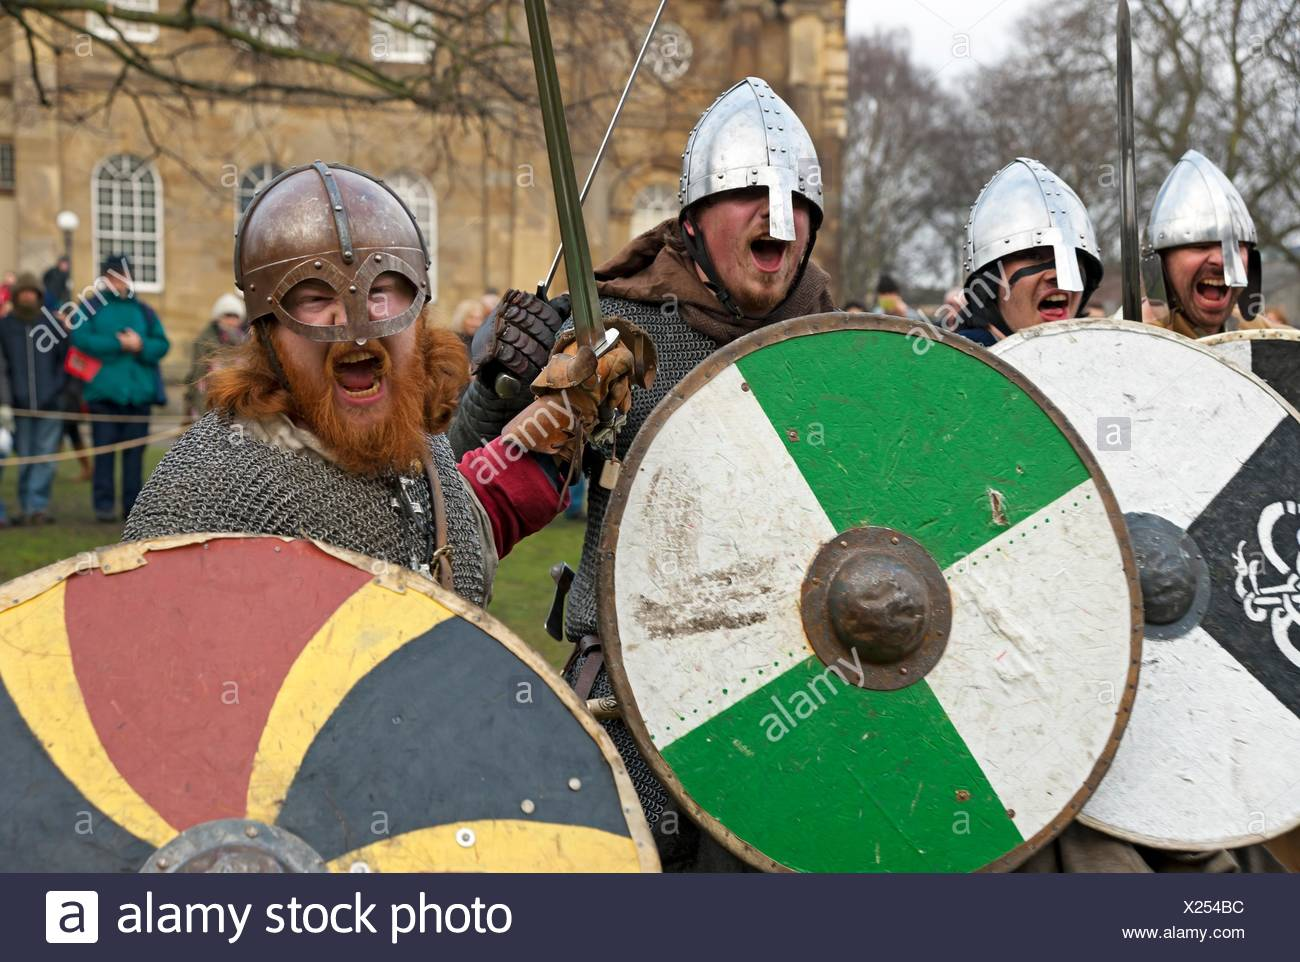 Vikings and Anglo Saxons at the Viking Festival York North Yorkshire England UK United Kingdom GB Great Britain. - Stock Image